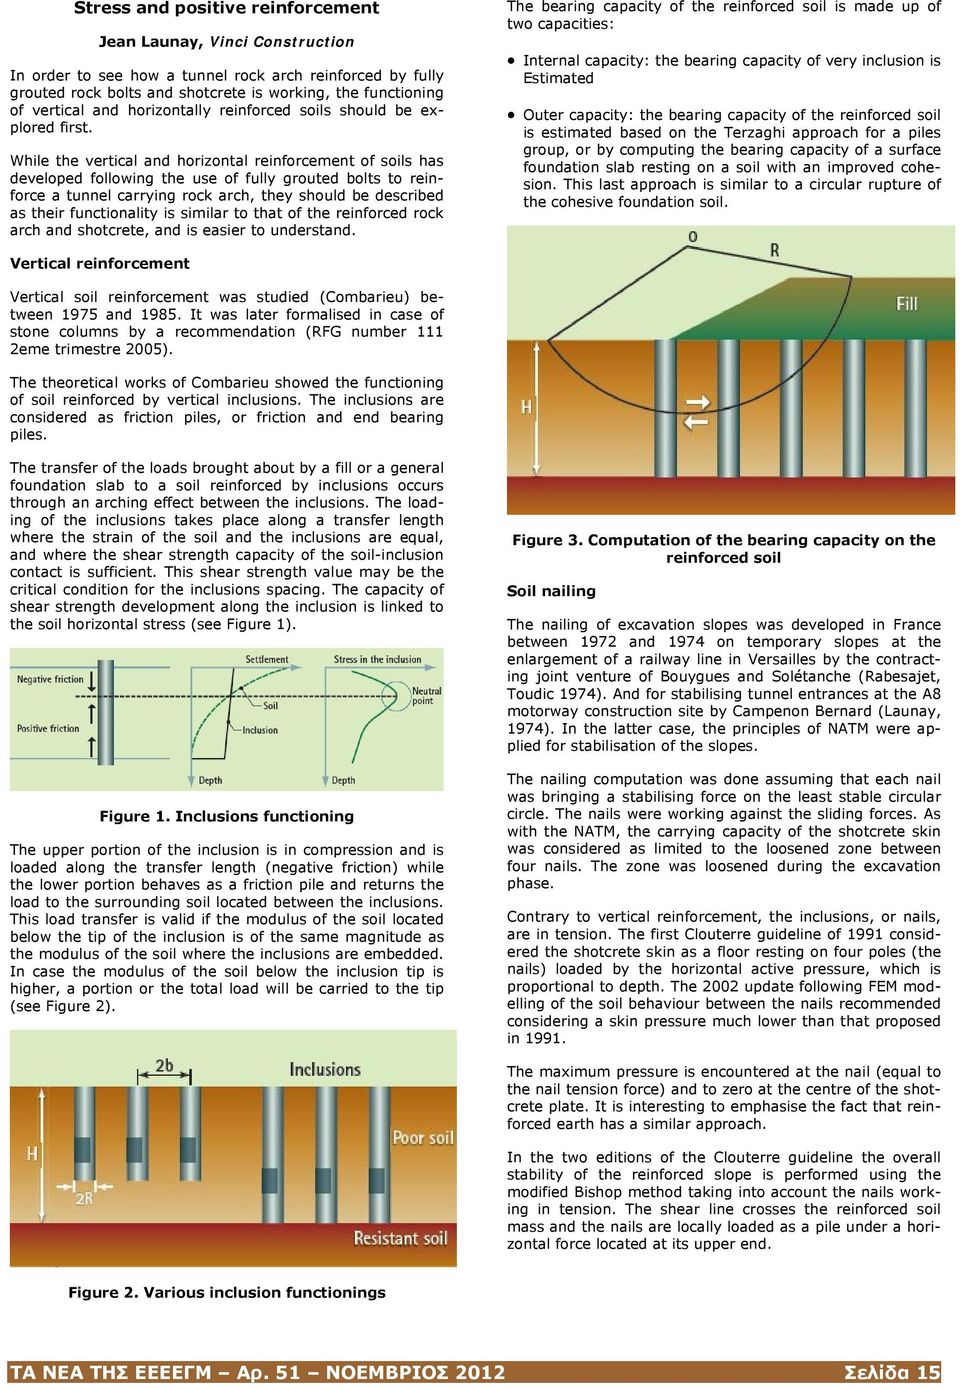 While the vertical and horizontal reinforcement of soils has developed following the use of fully grouted bolts to reinforce a tunnel carrying rock arch, they should be described as their